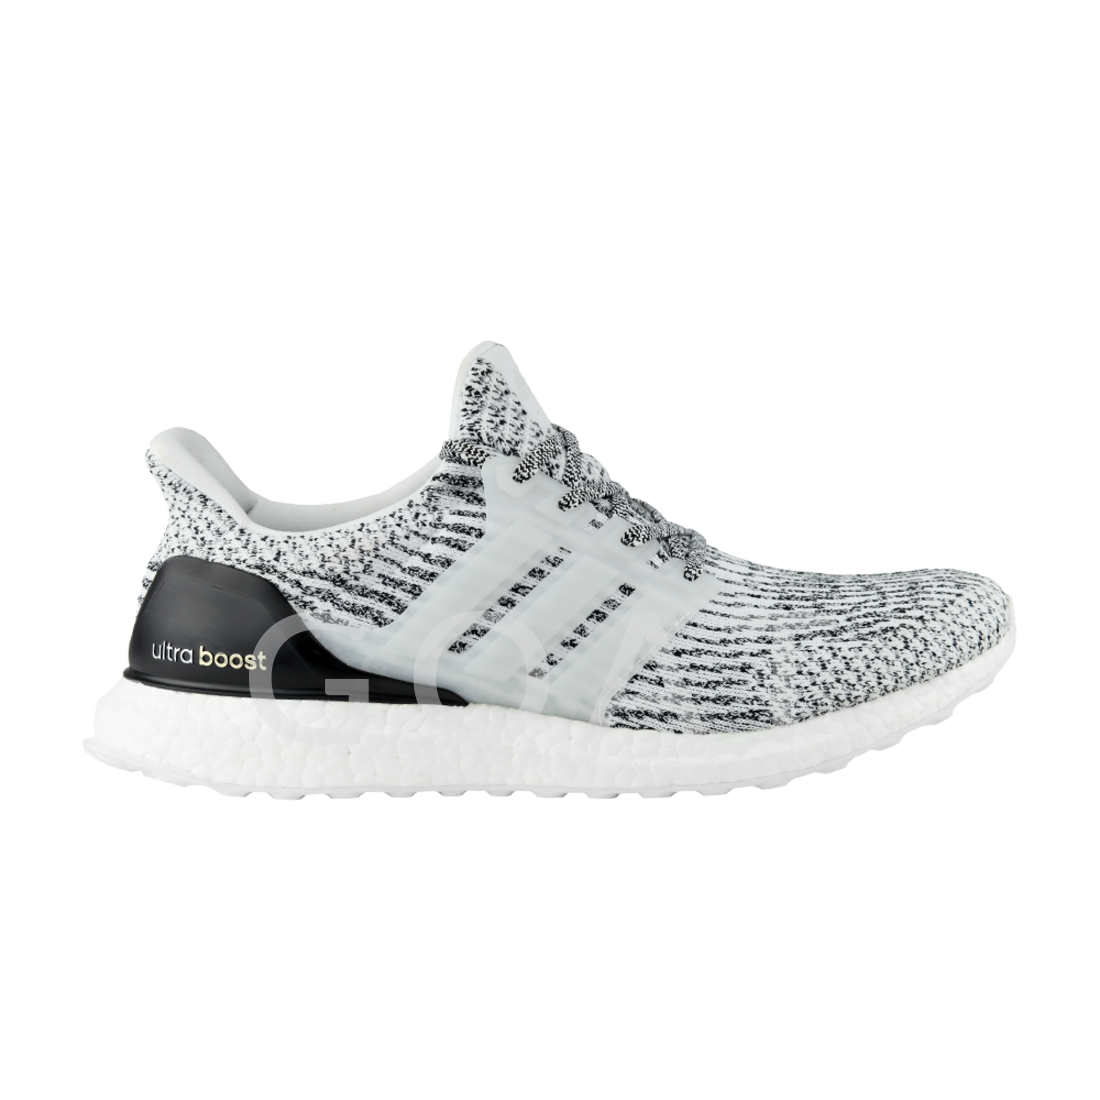 Adidas Ultra Boost Sz 10 Oreo Zebra Black / White / Gray S 80636